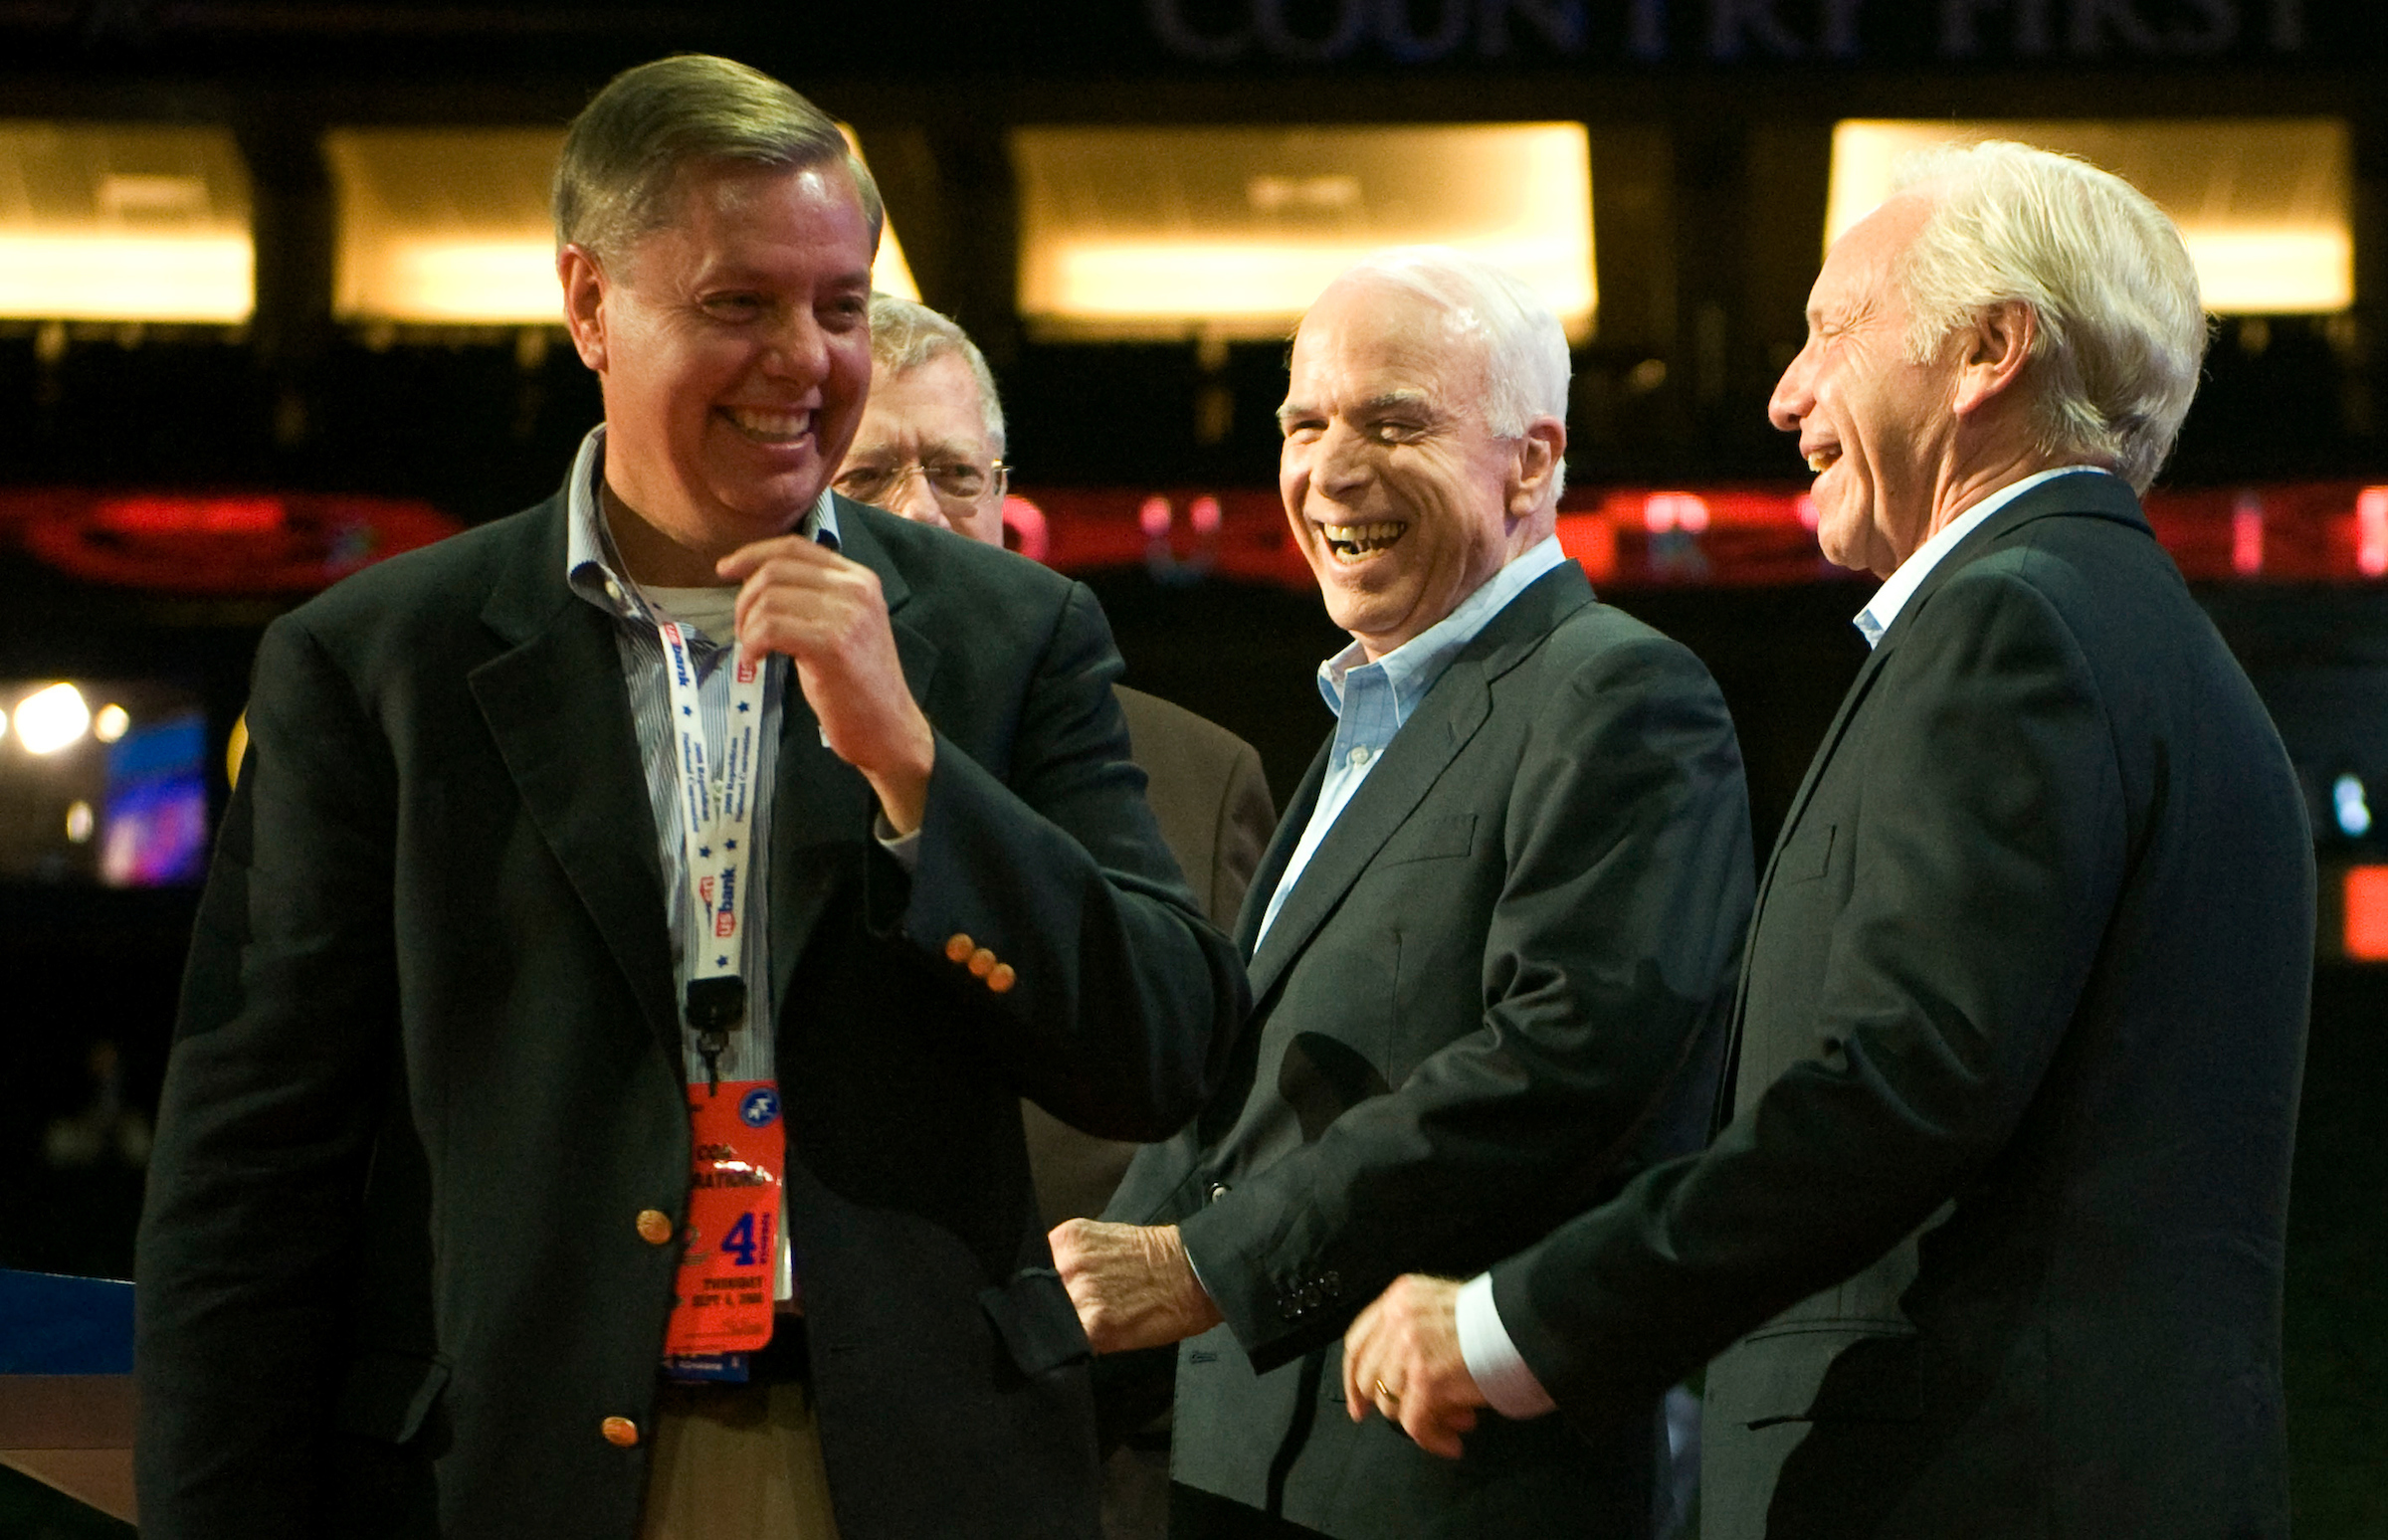 From left, Sen. Lindsey Graham, R-S.C., Republican presidential candidate Sen. John McCain, R-Ariz., and Sen. Joe Lieberman, I-Conn., laugh on stage during McCains stage walk through at the Republican National Convention at the Xcel Center in St. Paul, Minn., on Thursday, Sept. 4, 2008.